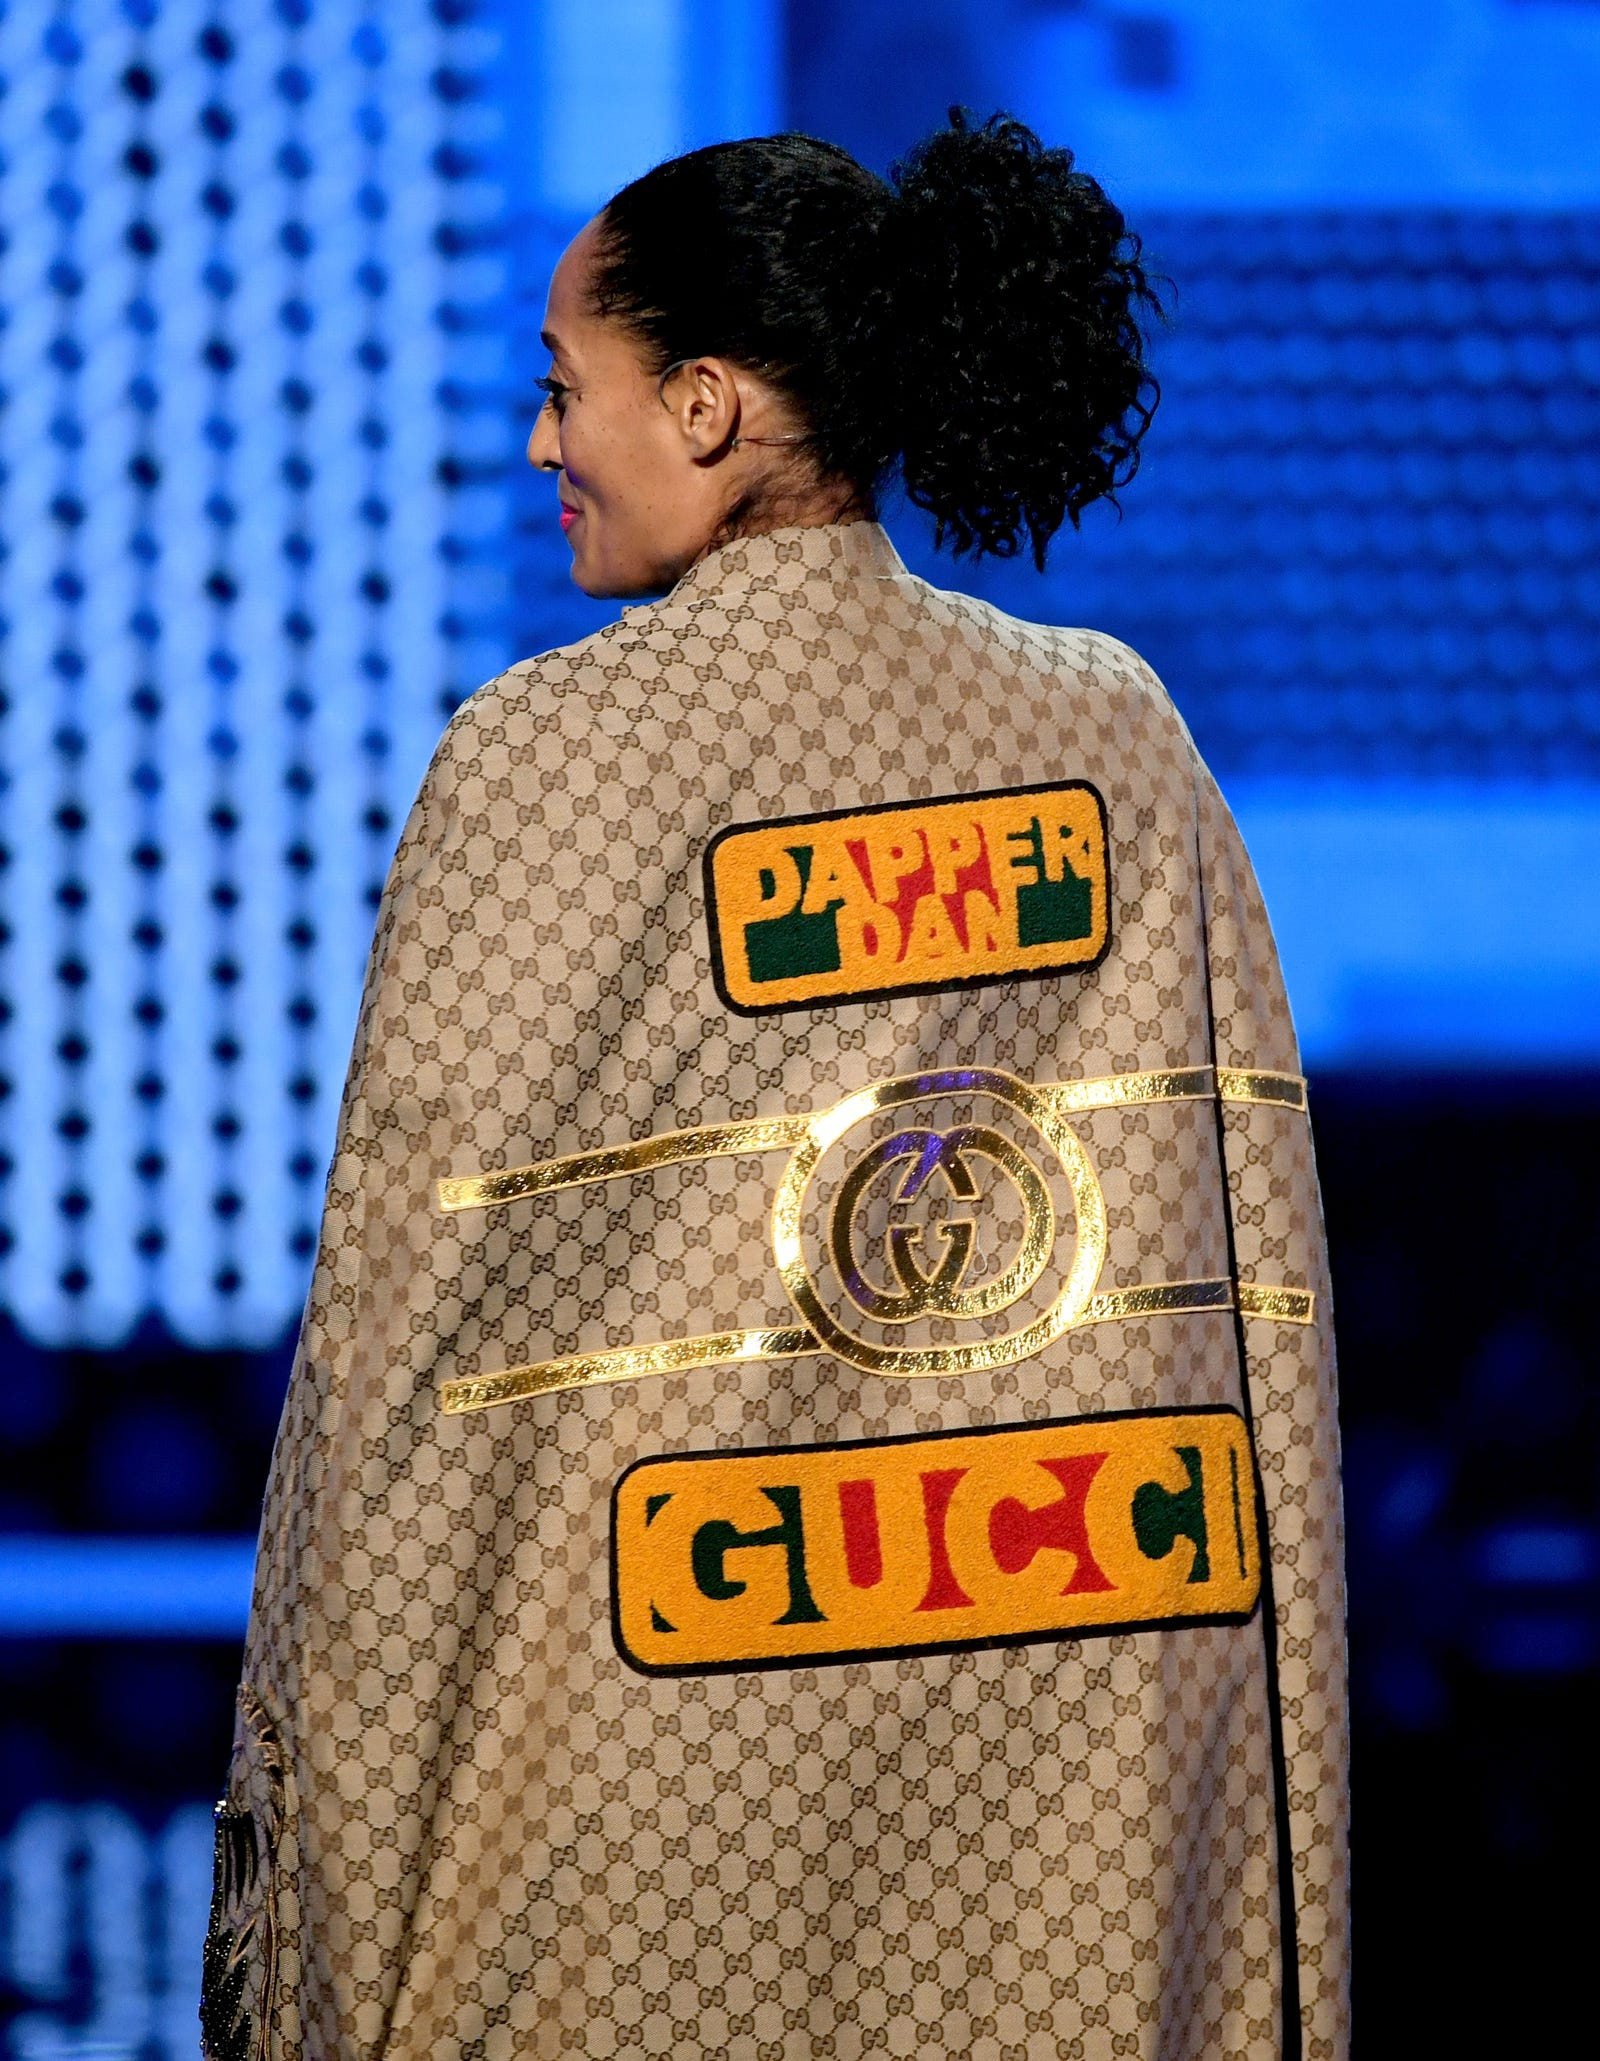 Tracee Ellis Ross in Dapper Dan x Gucci